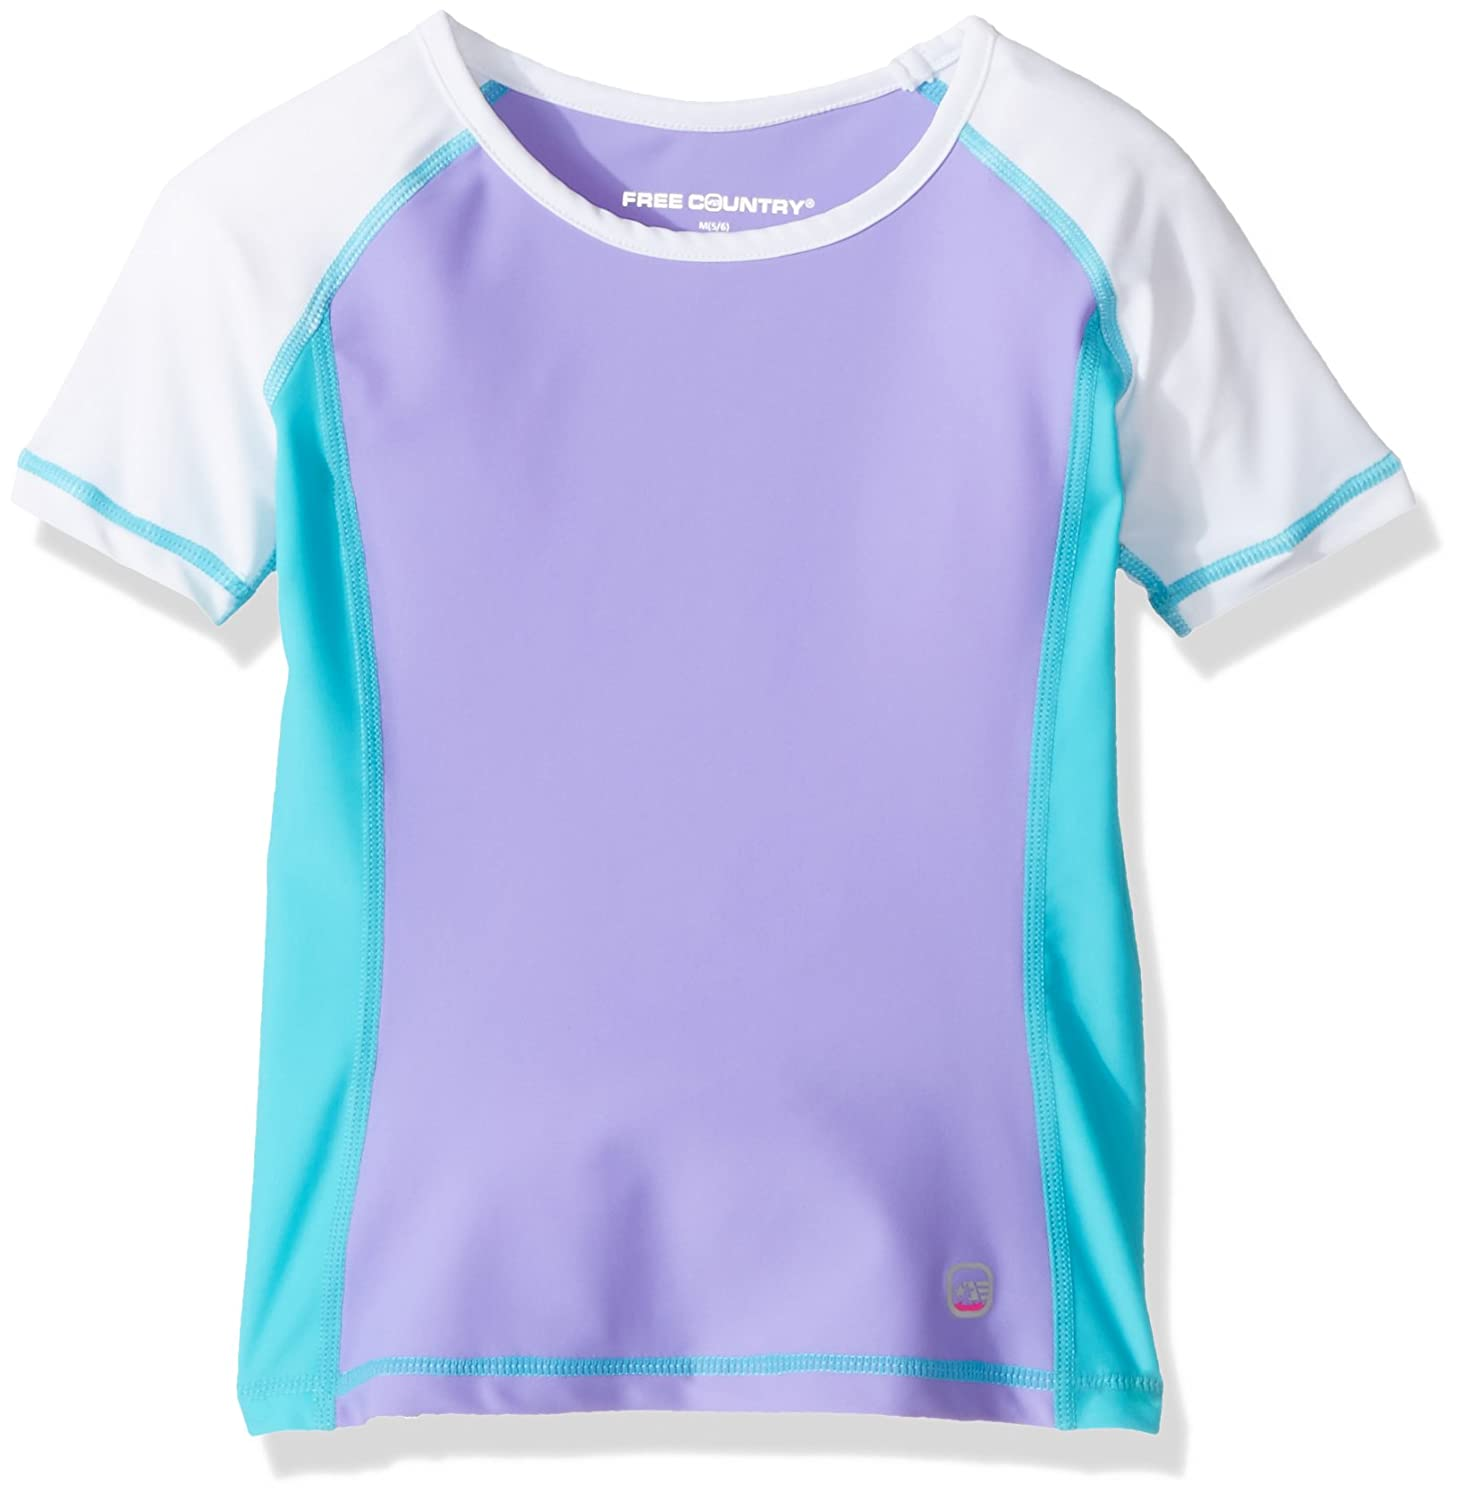 Free Country Girls Short Sleeve Rash Guard